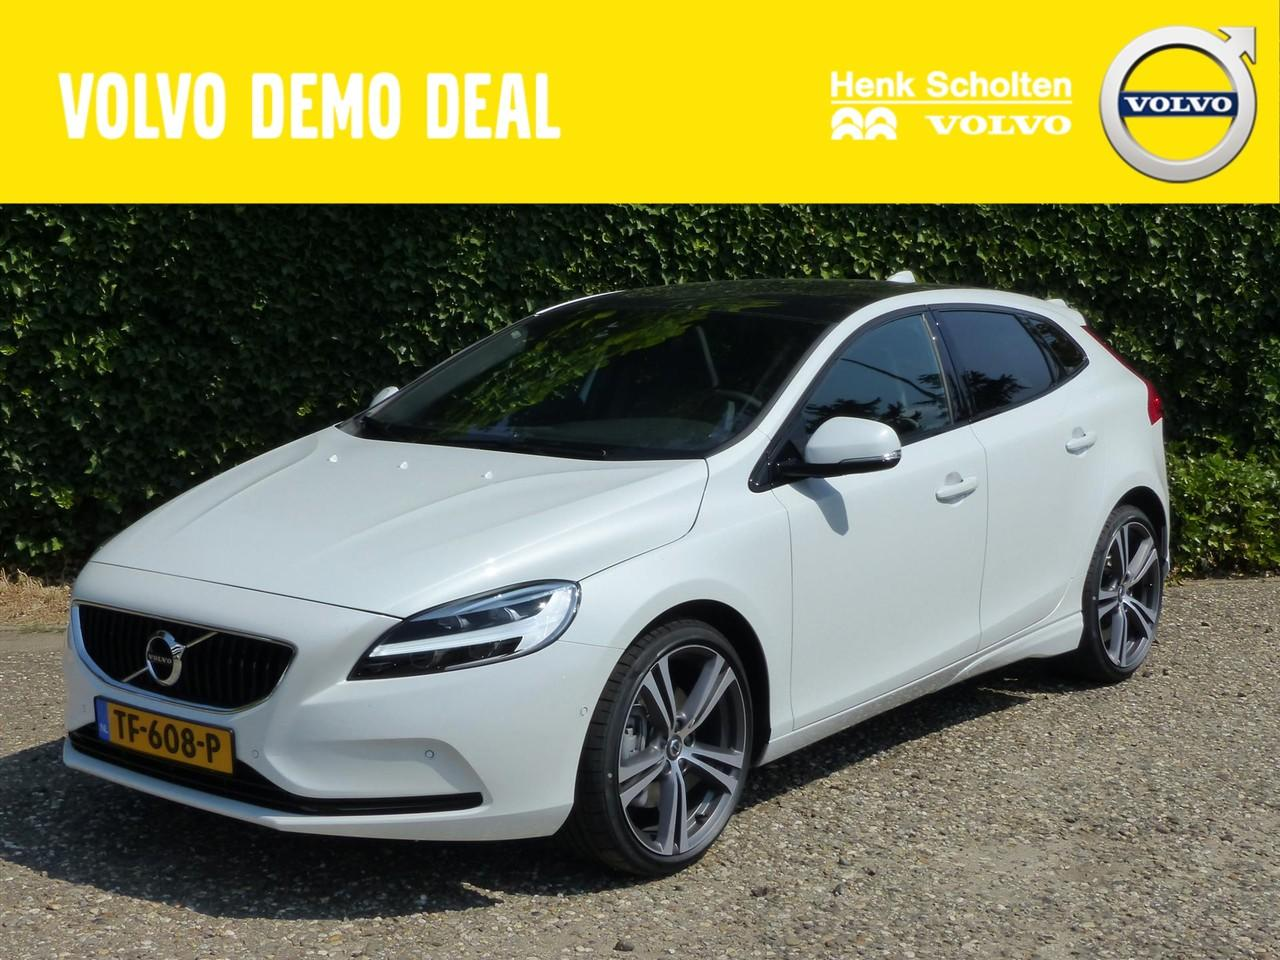 """Volvo V40 T3 gt dyn. edition, 19"""" artio, exterior styling pack, parelmoer"""